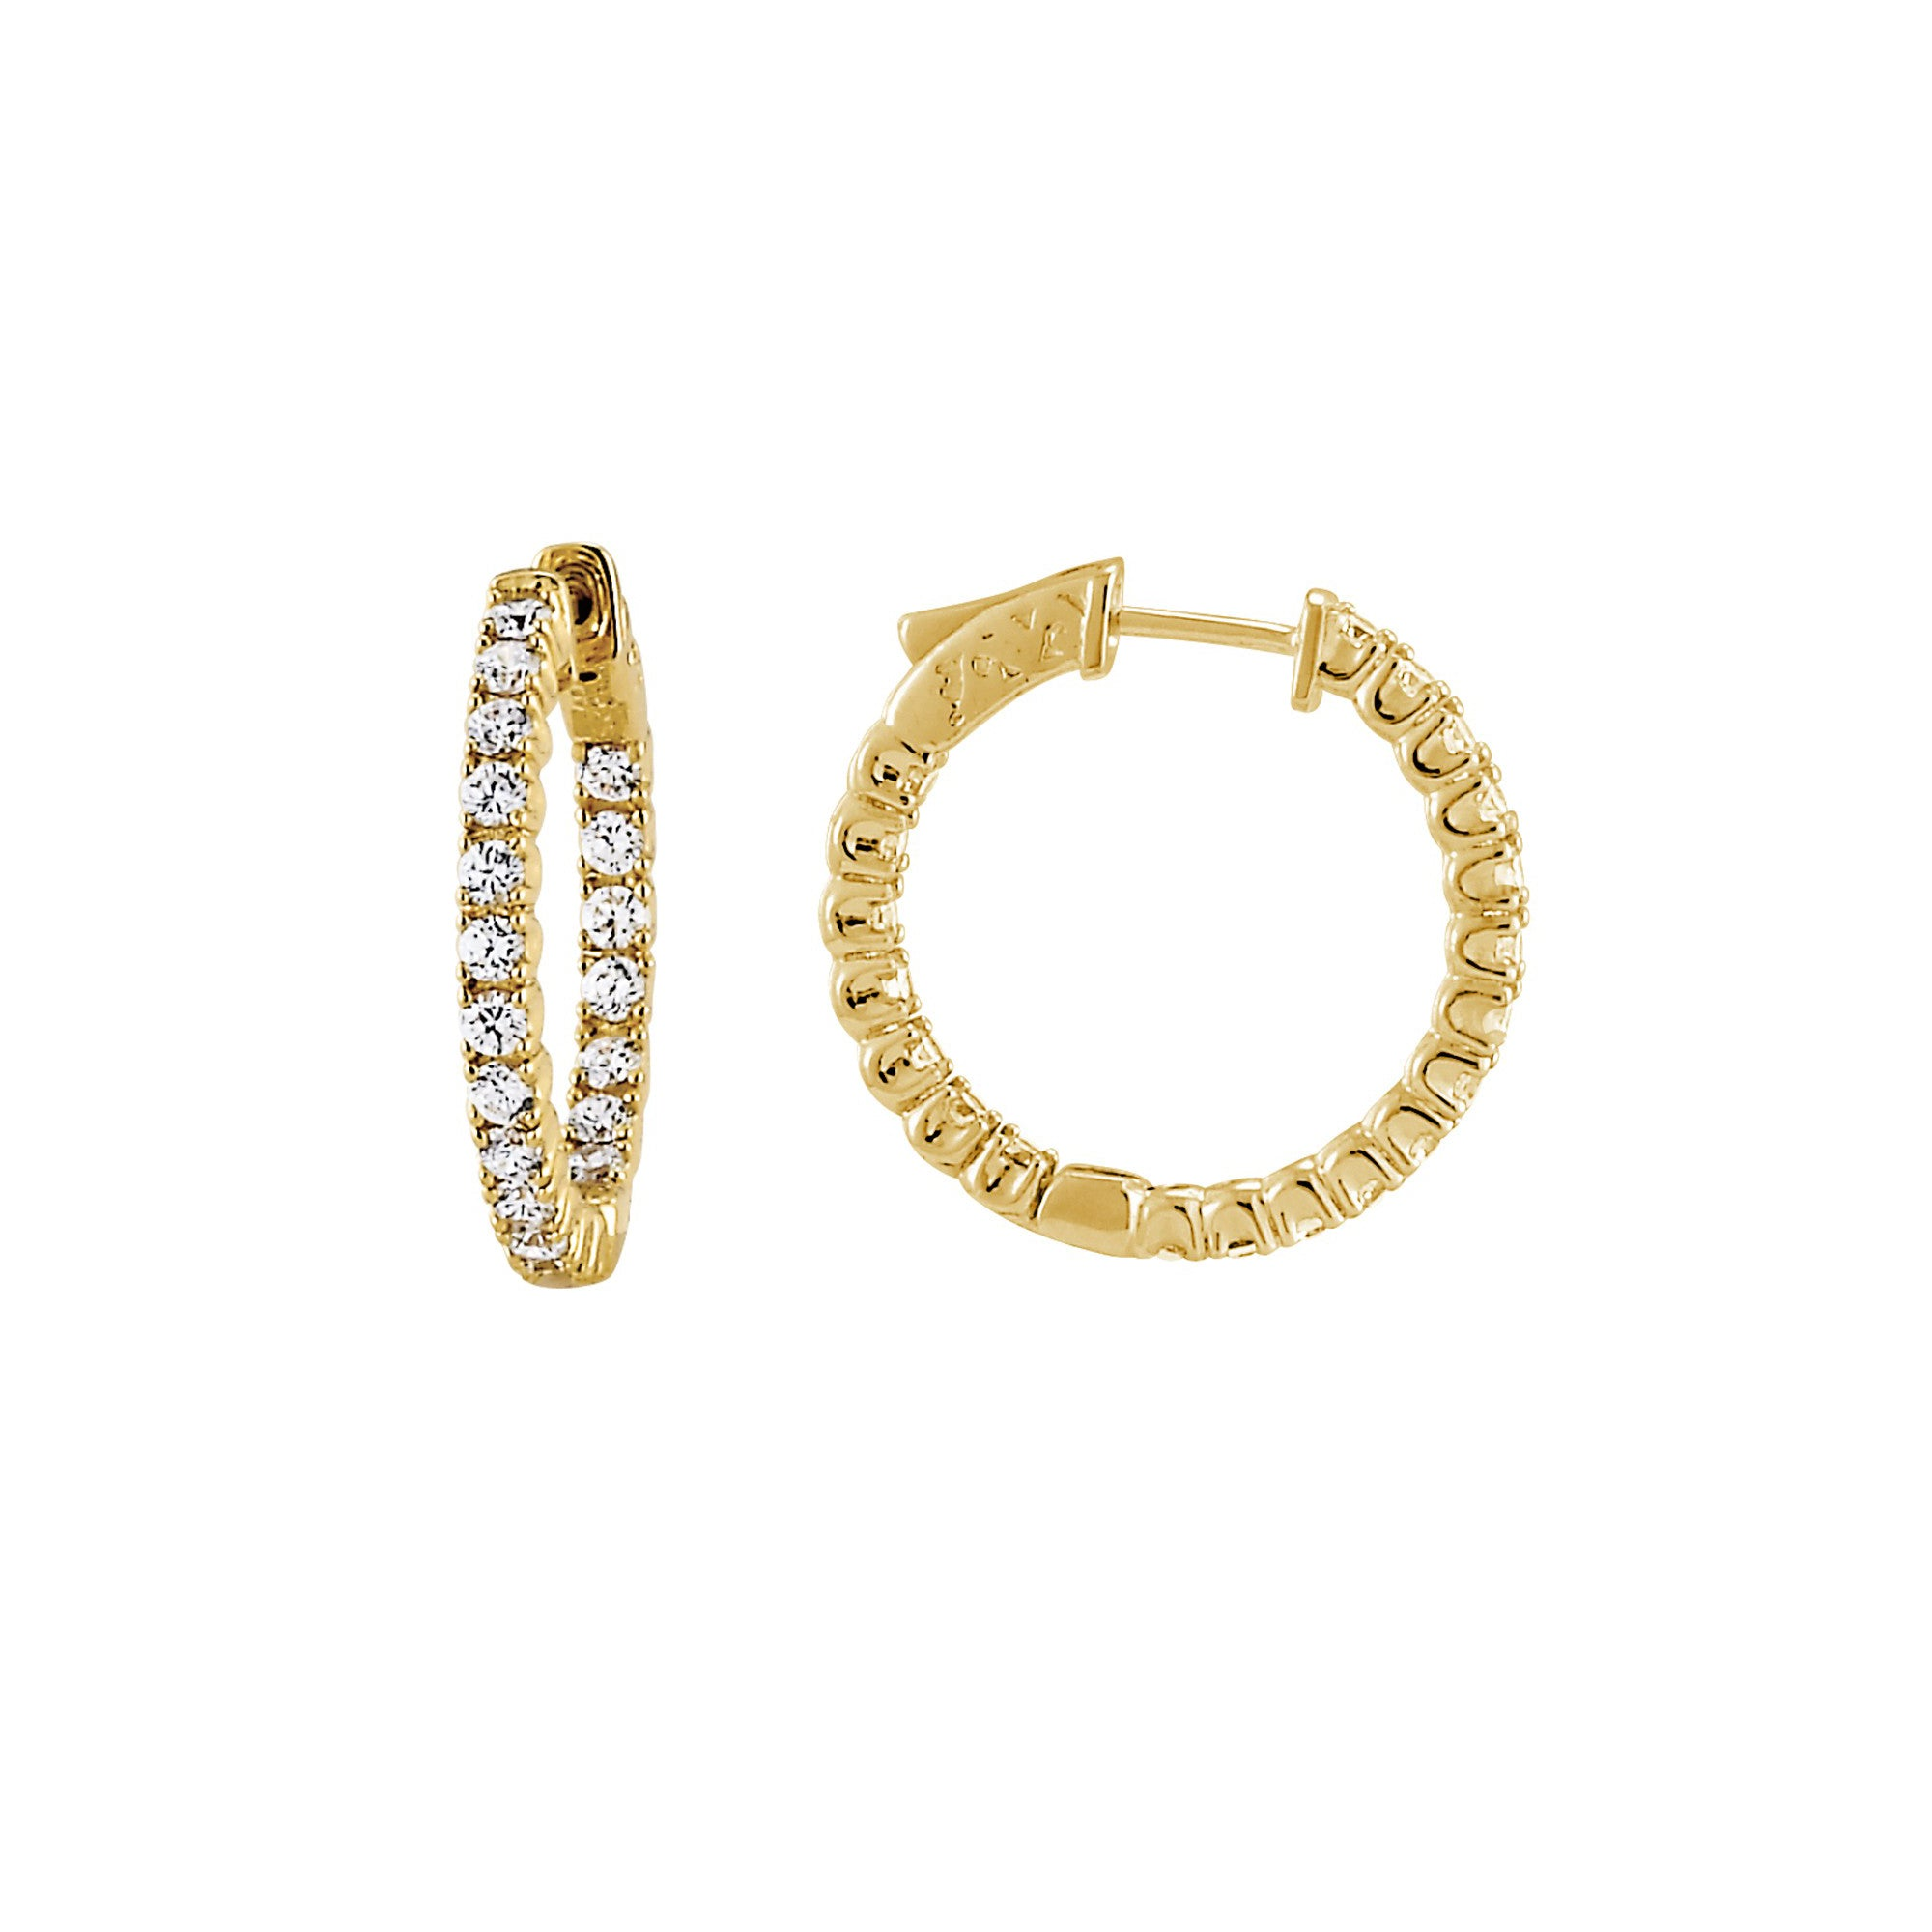 Inside Out CZ Hoops,1 Inch, Sterling Silver with Yellow Gold Plating